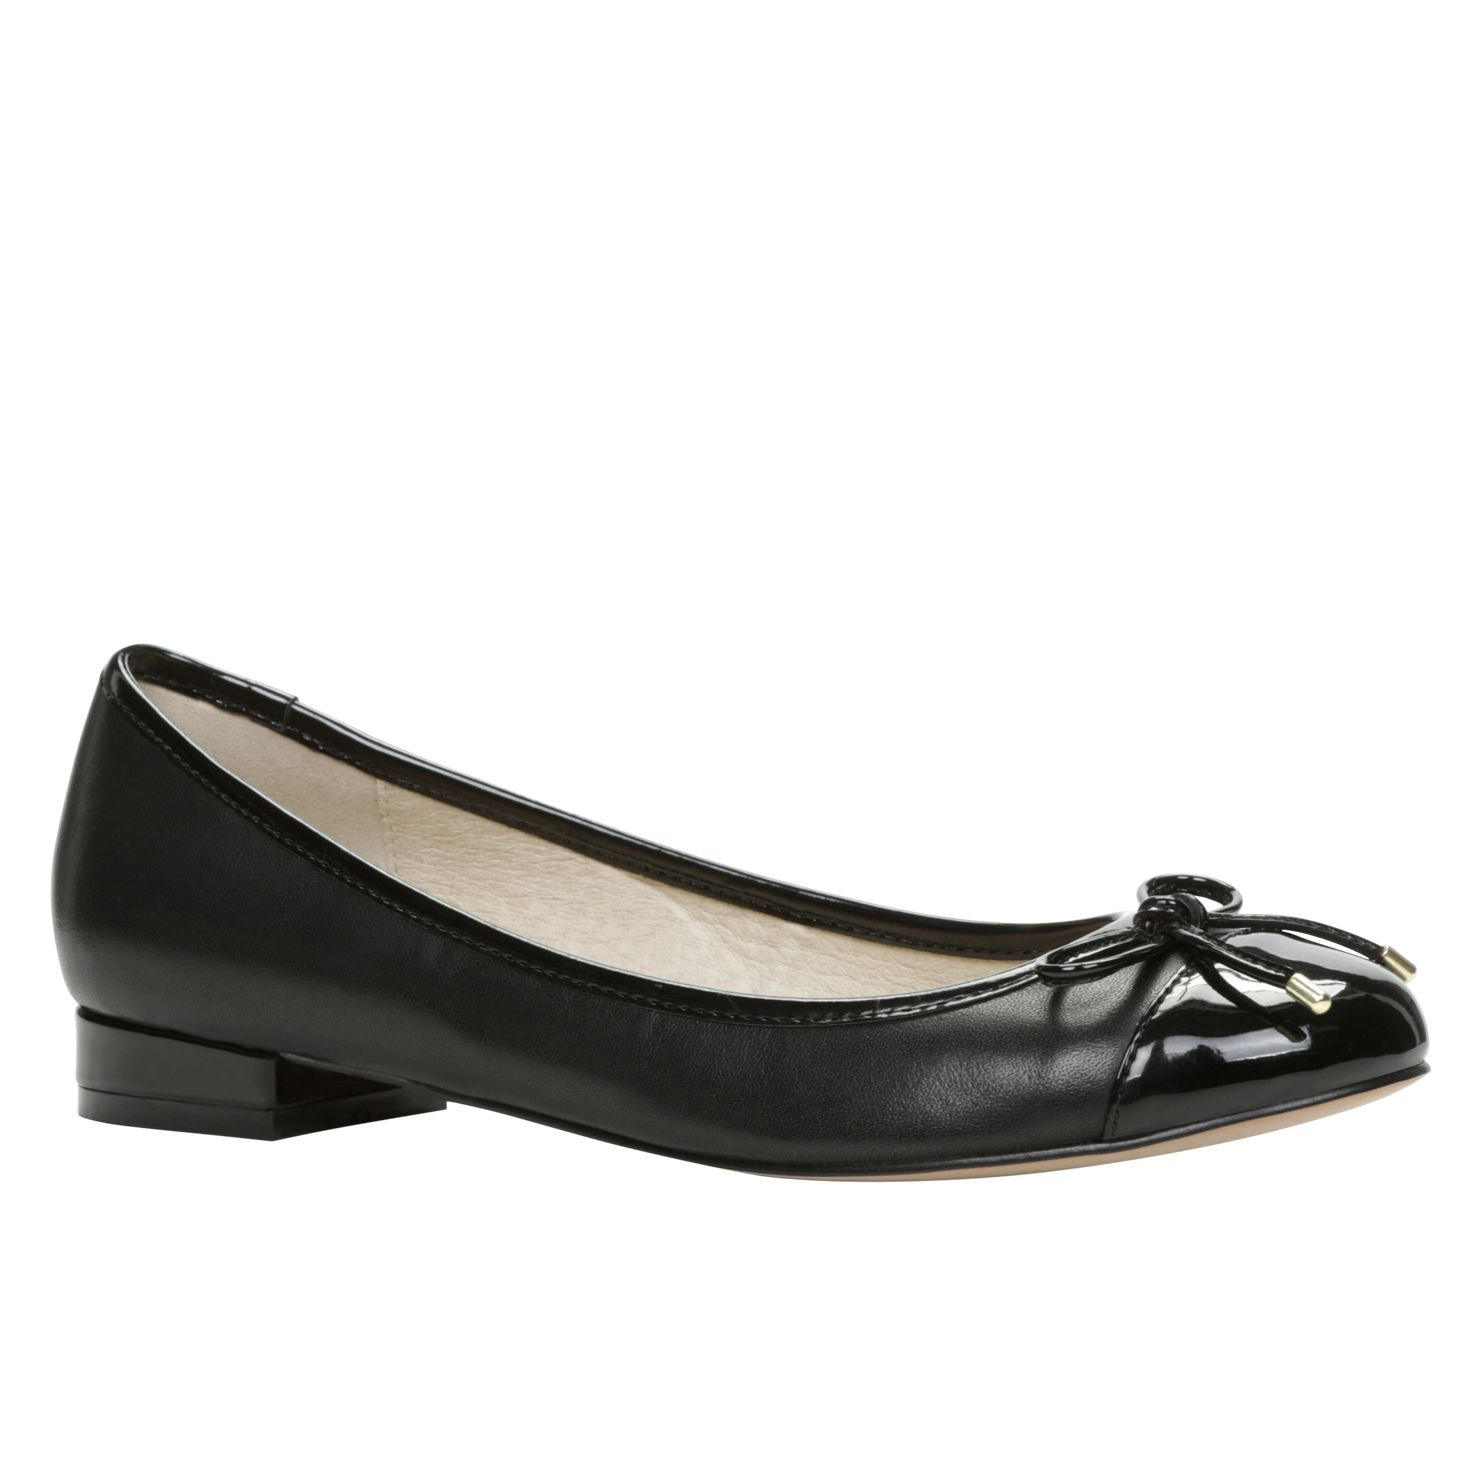 Civen round toe pump shoes